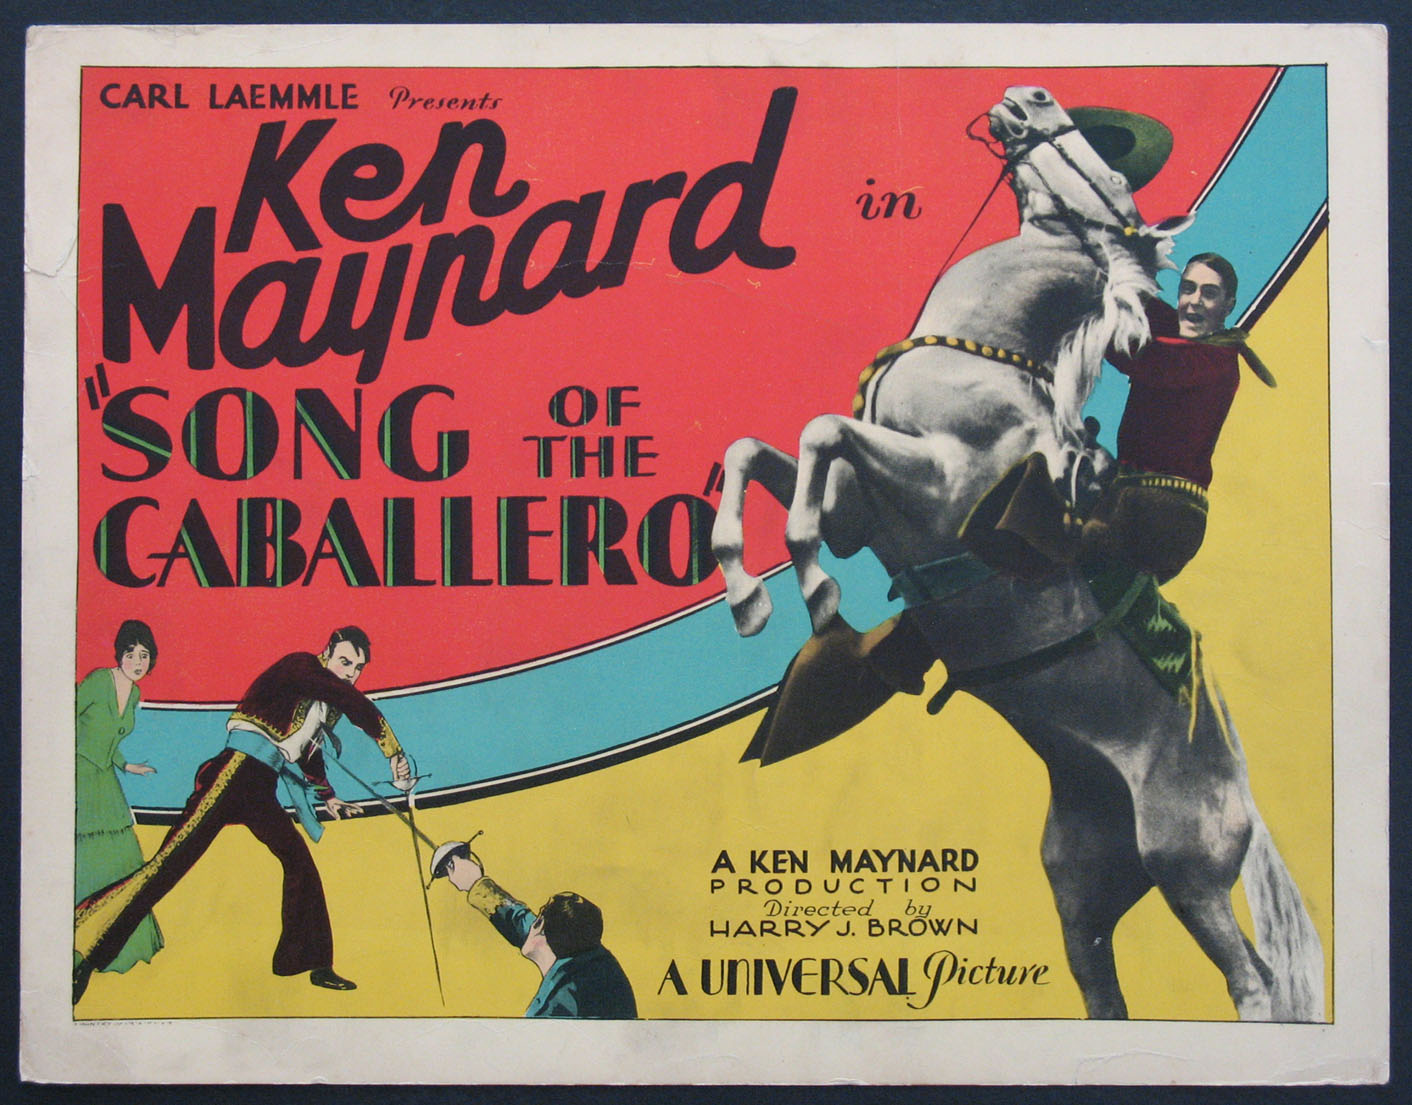 SONG OF THE CABALLERO @ FilmPosters.com